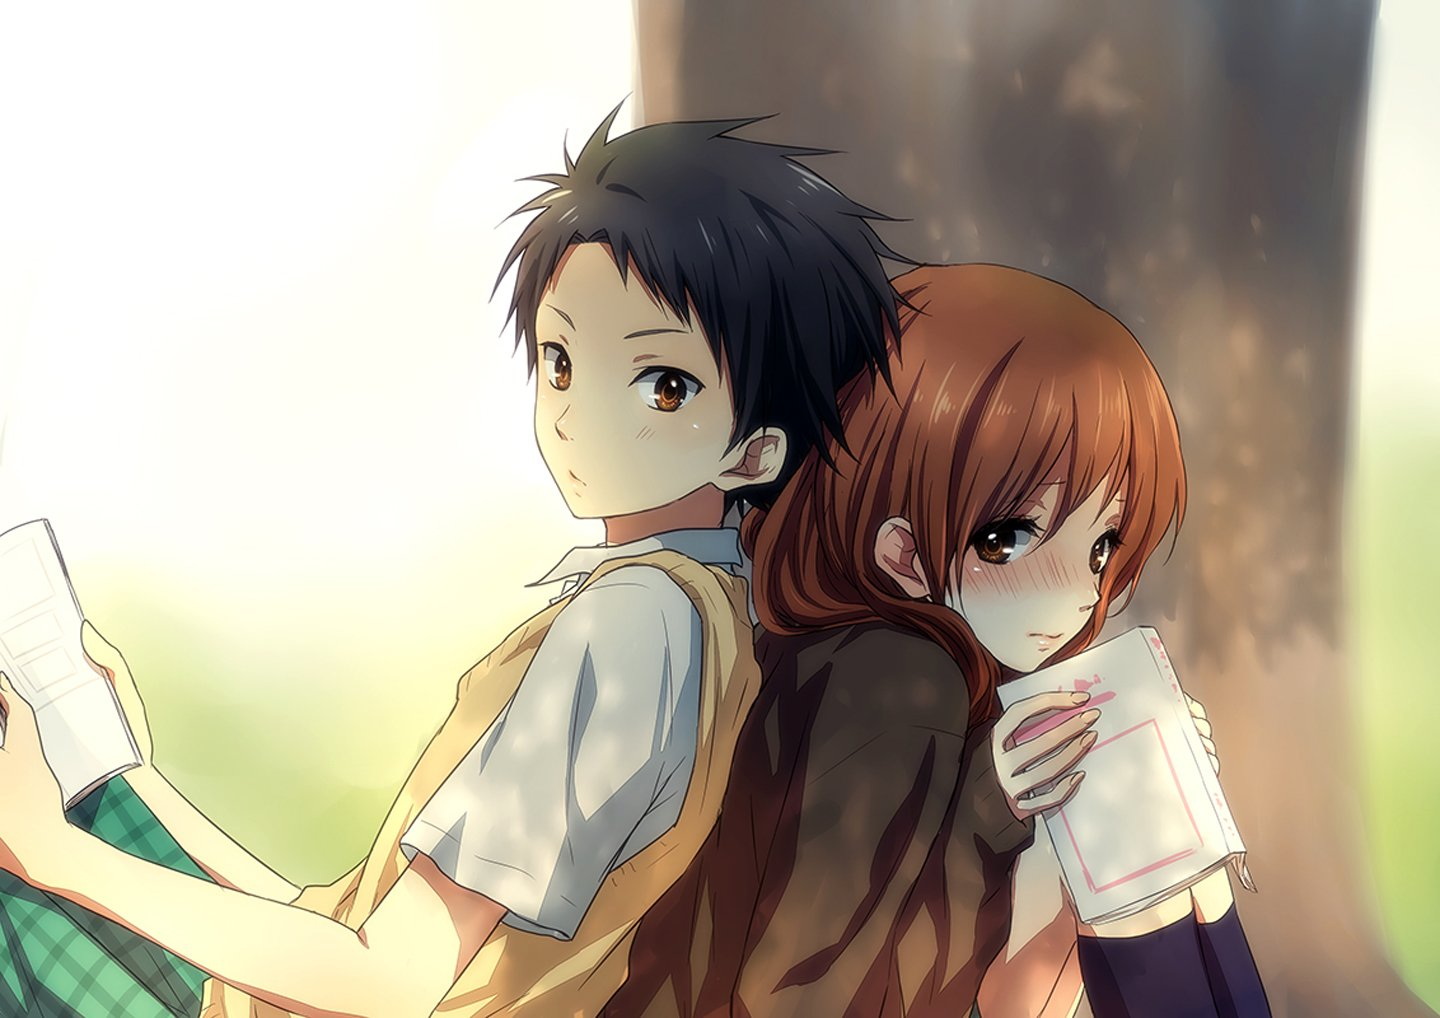 Anime couples with brown hair